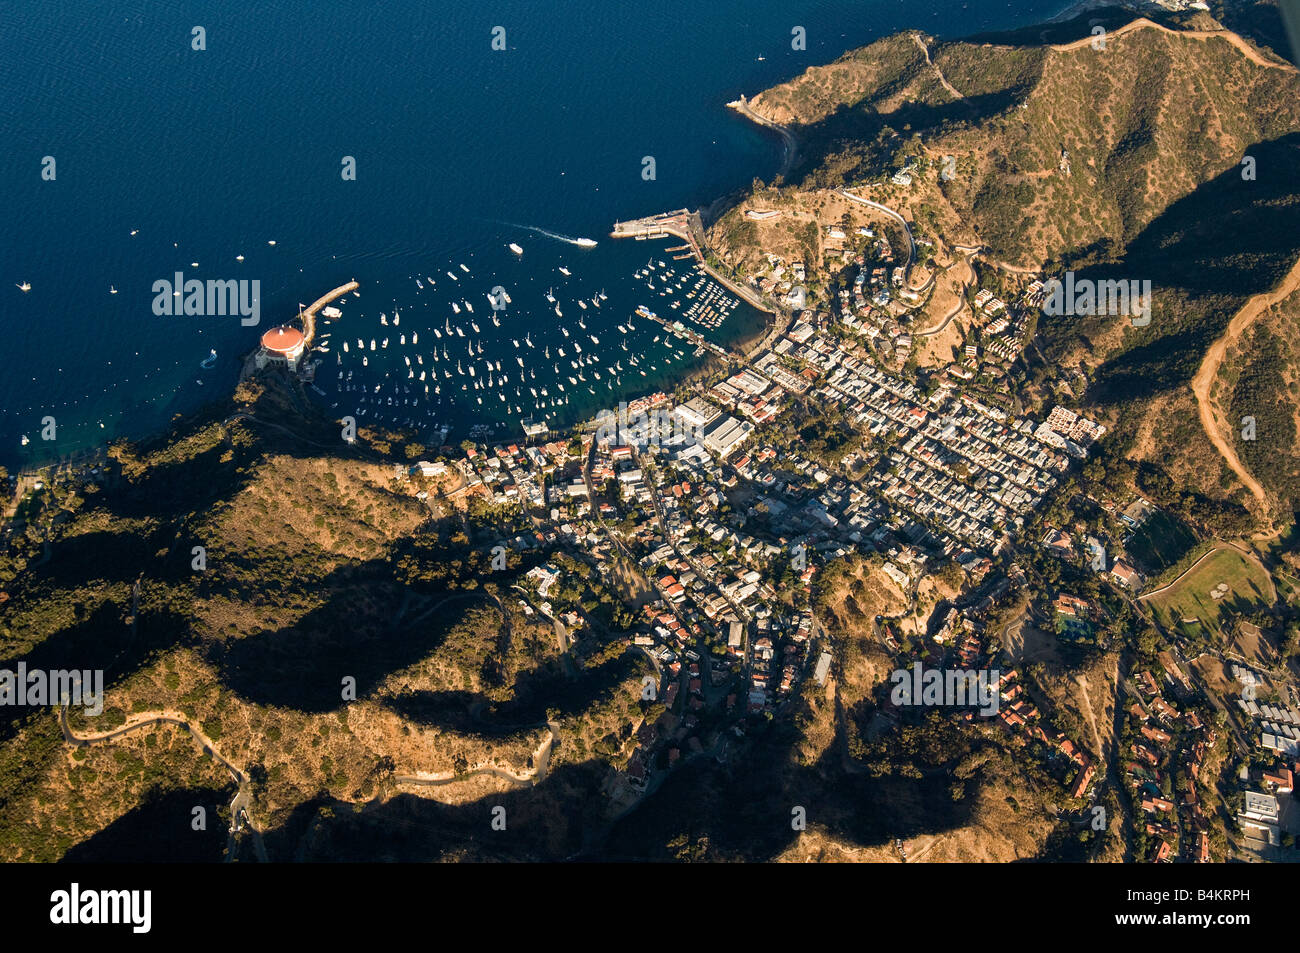 aerial view of avalon, town on catalina island of the california